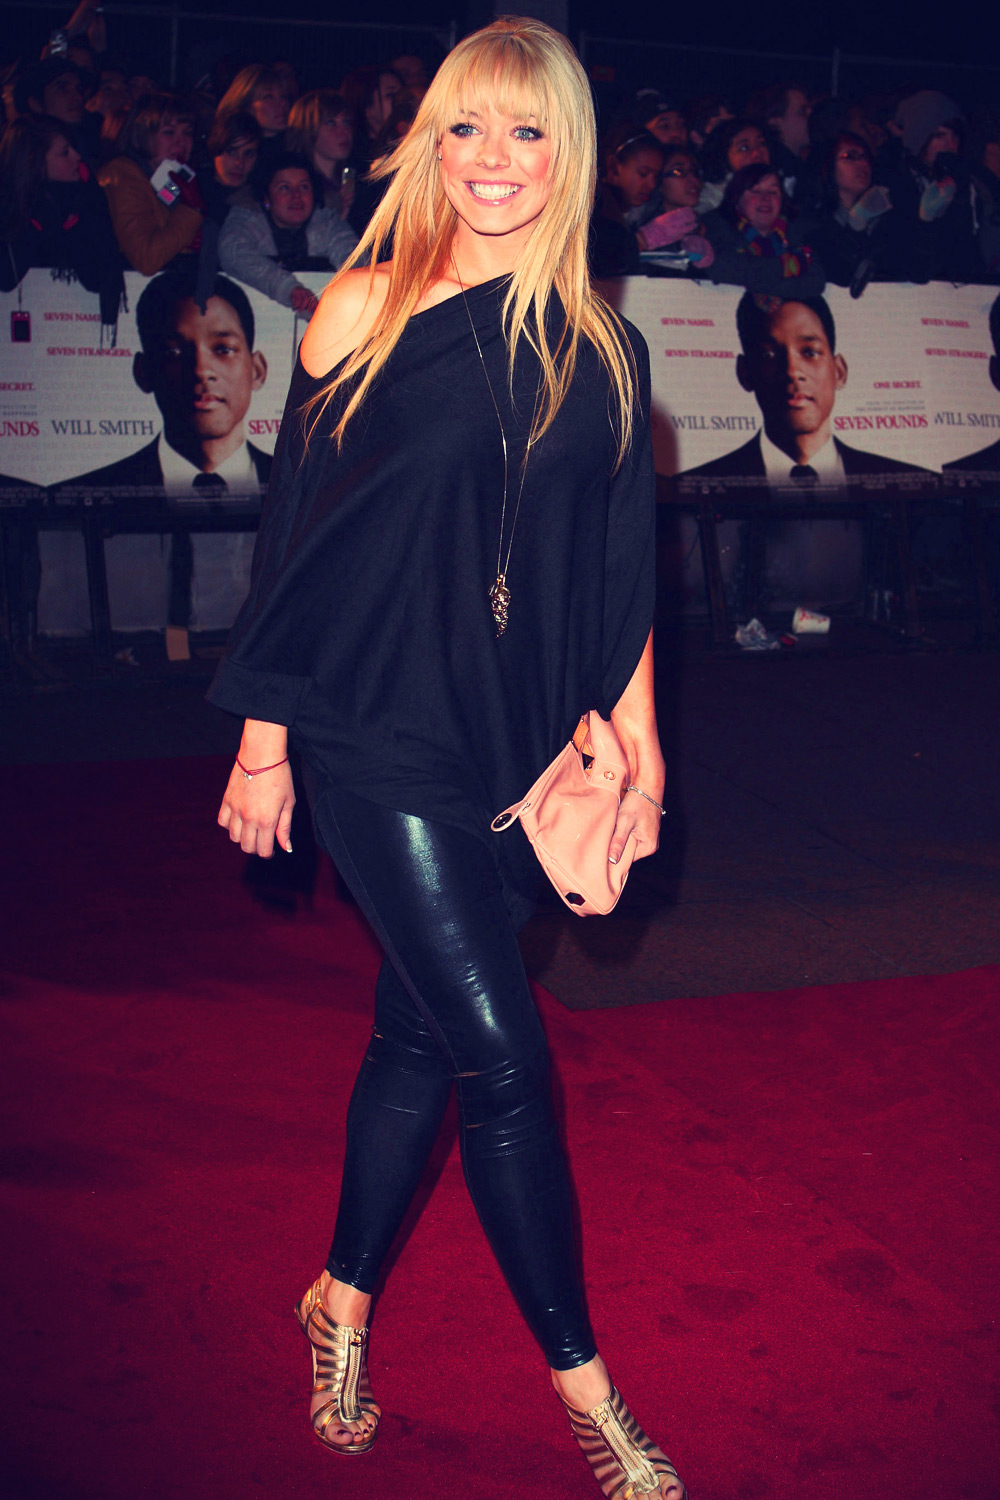 Liz Mcclarnon attends the UK Premiere of 'Seven Pounds